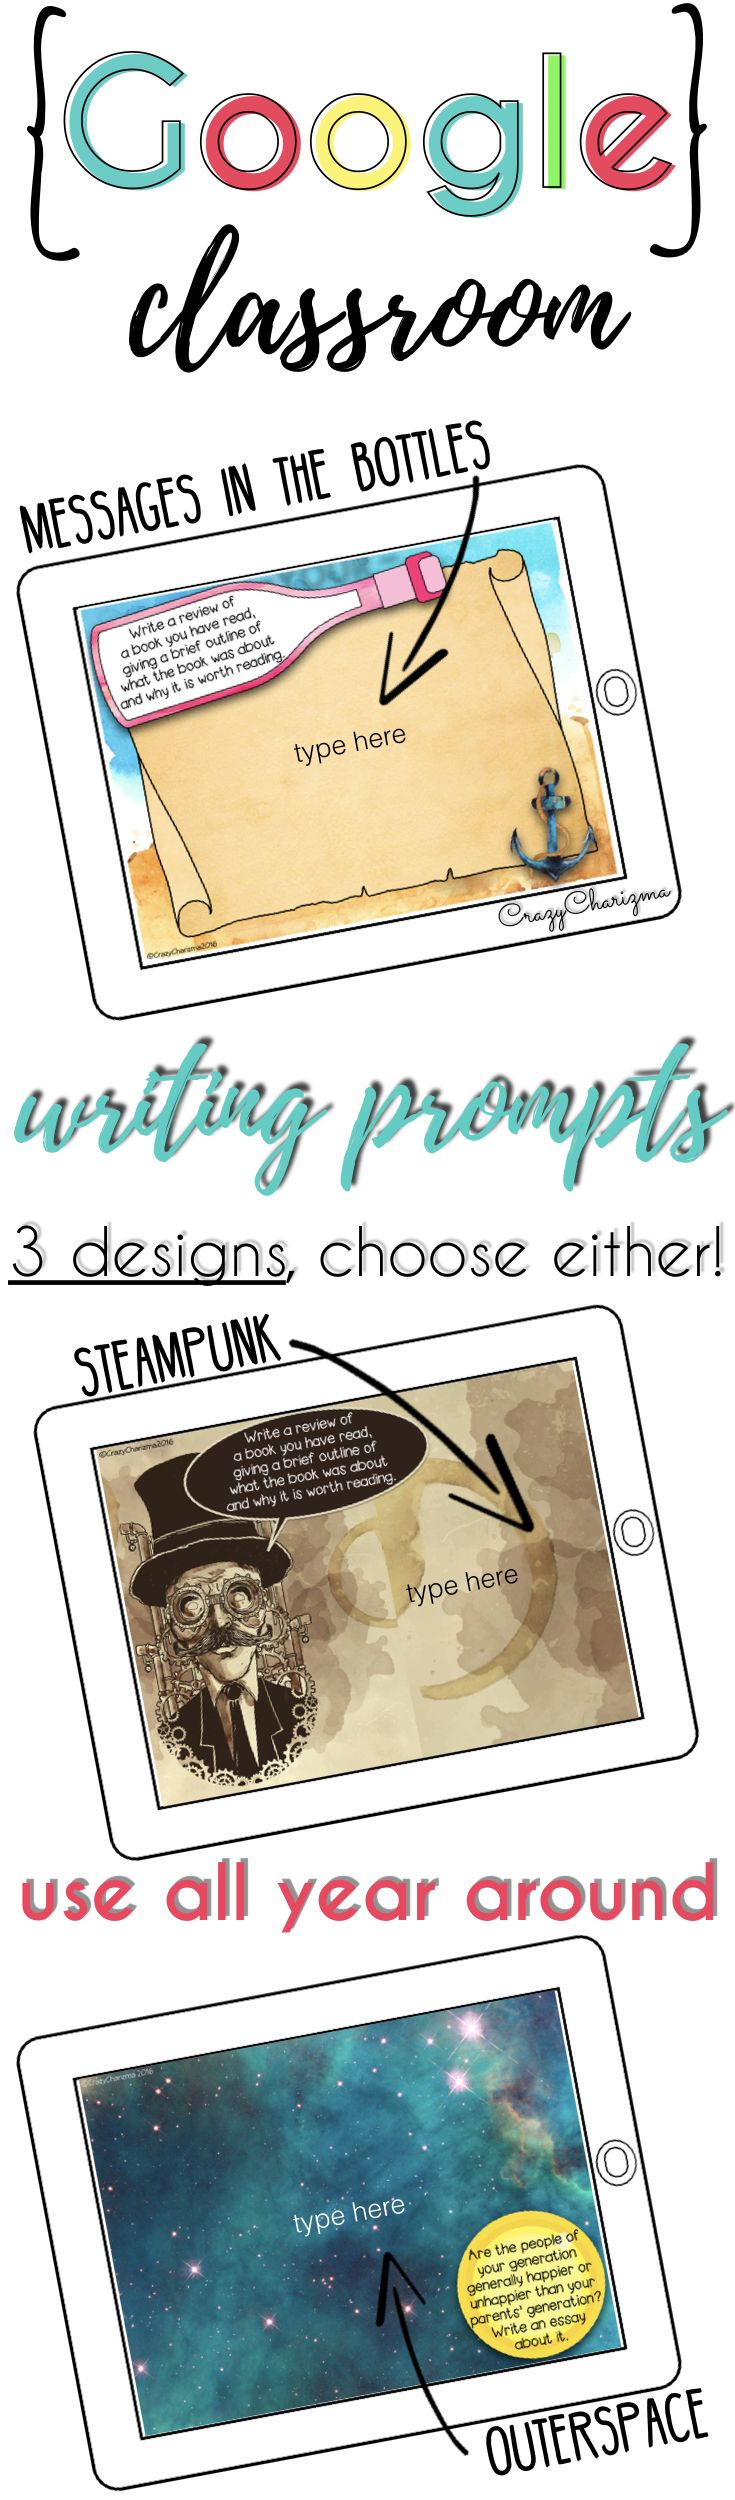 best ideas about high school writing prompts go google now would you like to go paperless and engage your kids